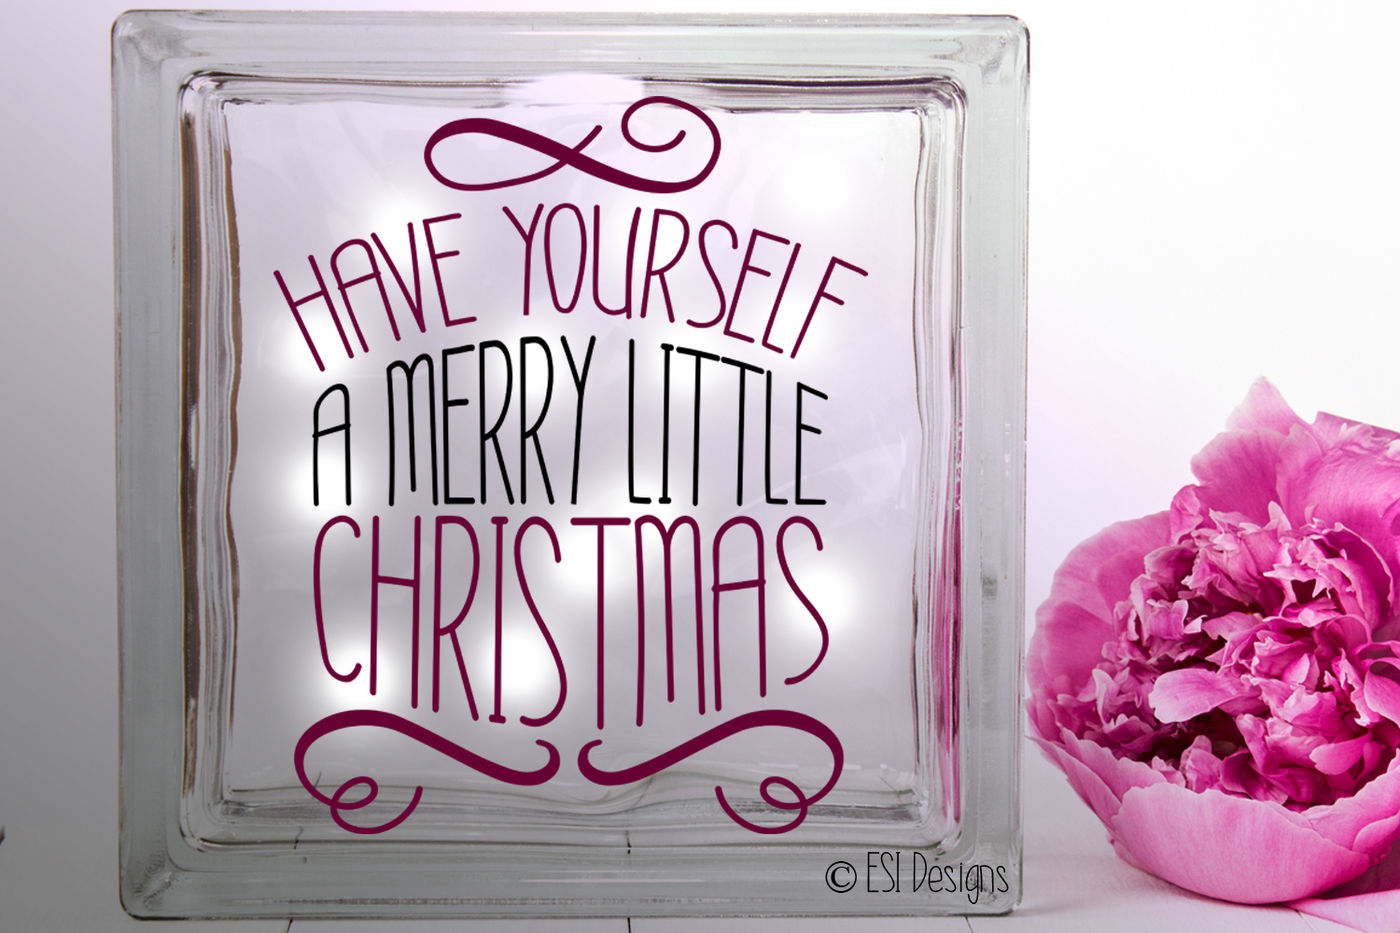 Have Yourself A Merry Little Christmas Christmas Quote Design By